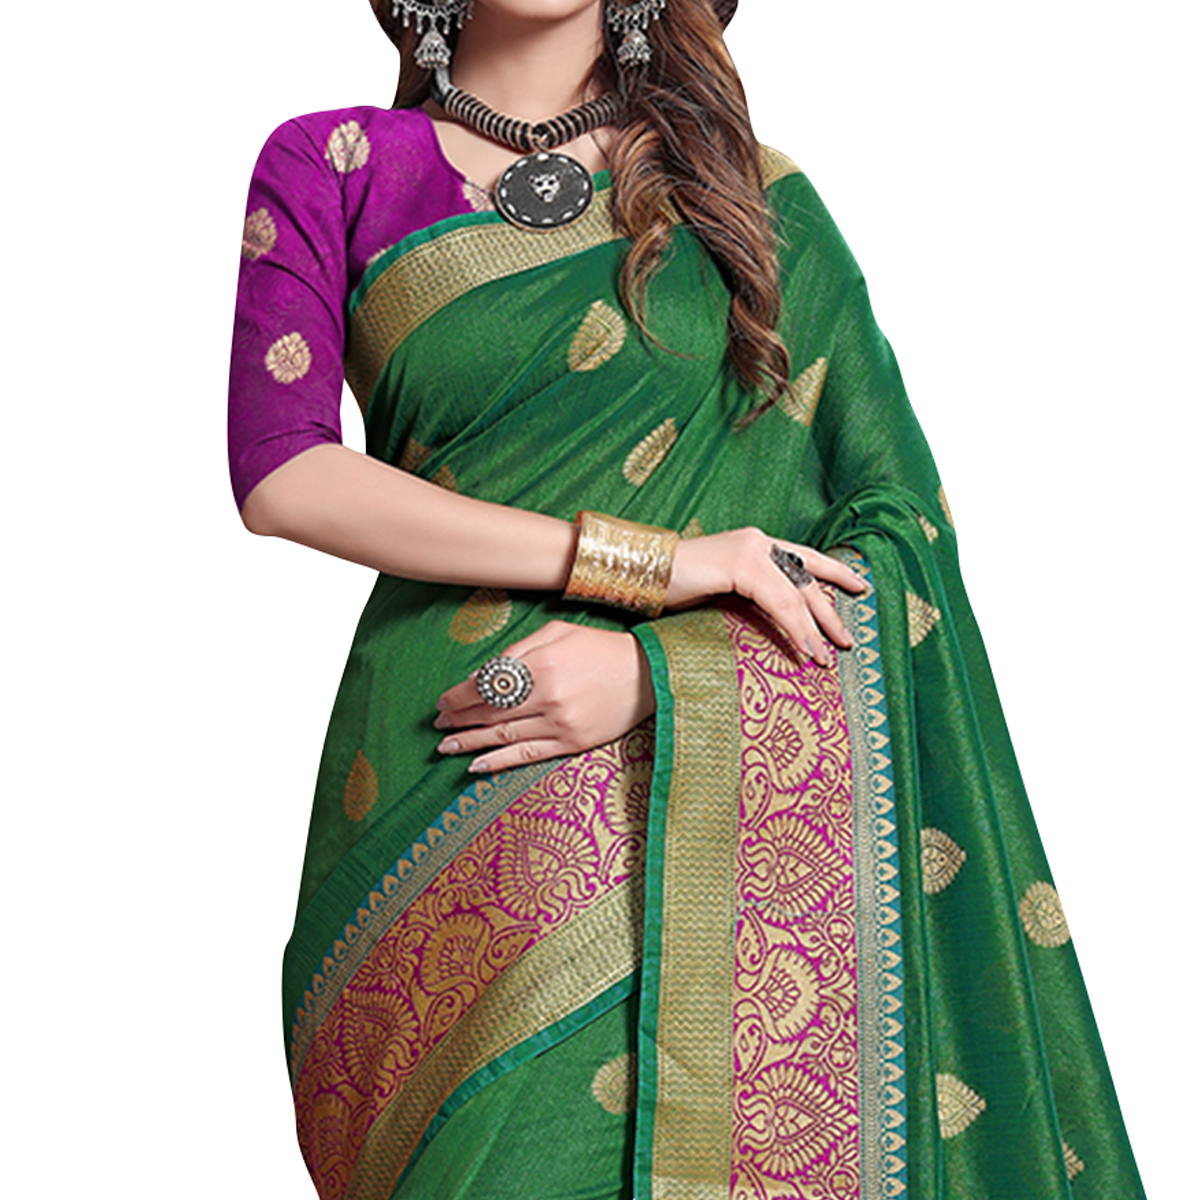 Majesty Green Colored Festive Wear Cotton Silk Saree